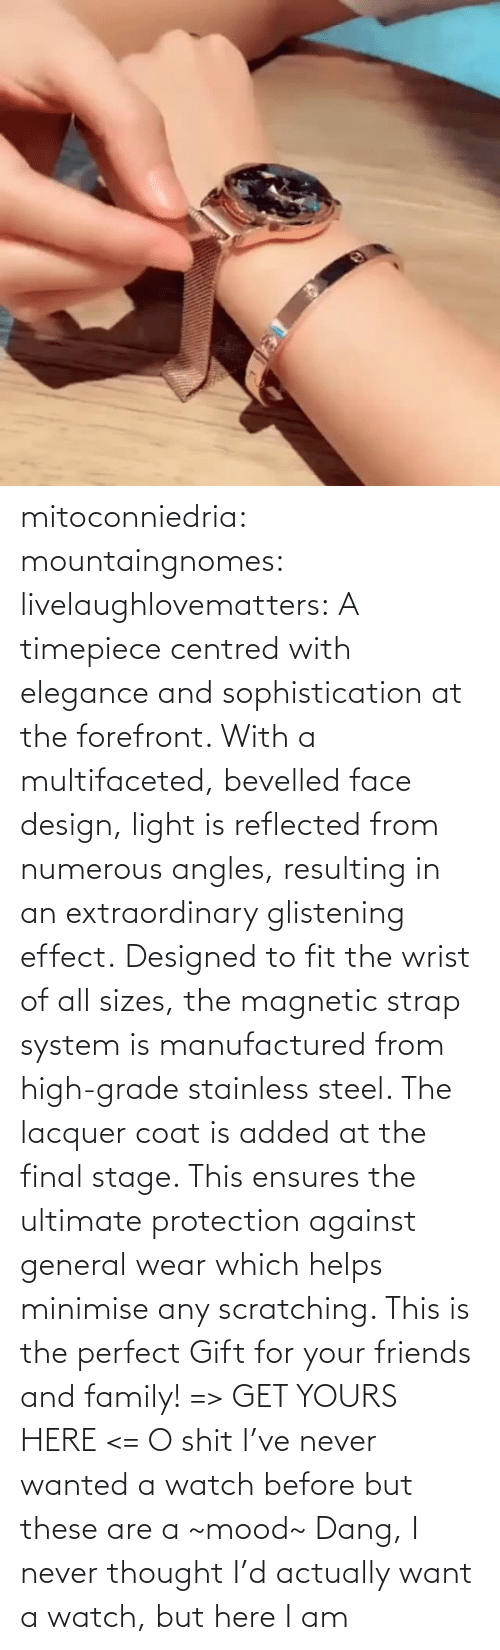 amp: mitoconniedria: mountaingnomes:   livelaughlovematters:  A timepiece centred with elegance and sophistication at the forefront. With a multifaceted, bevelled face design, light is reflected from numerous angles, resulting in an extraordinary glistening effect. Designed to fit the wrist of all sizes, the magnetic strap system is manufactured from high-grade stainless steel. The lacquer coat is added at the final stage. This ensures the ultimate protection against general wear which helps minimise any scratching. This is the perfect Gift for your friends and family! => GET YOURS HERE <=  O shit I've never wanted a watch before but these are a ~mood~    Dang, I never thought I'd actually want a watch, but here I am